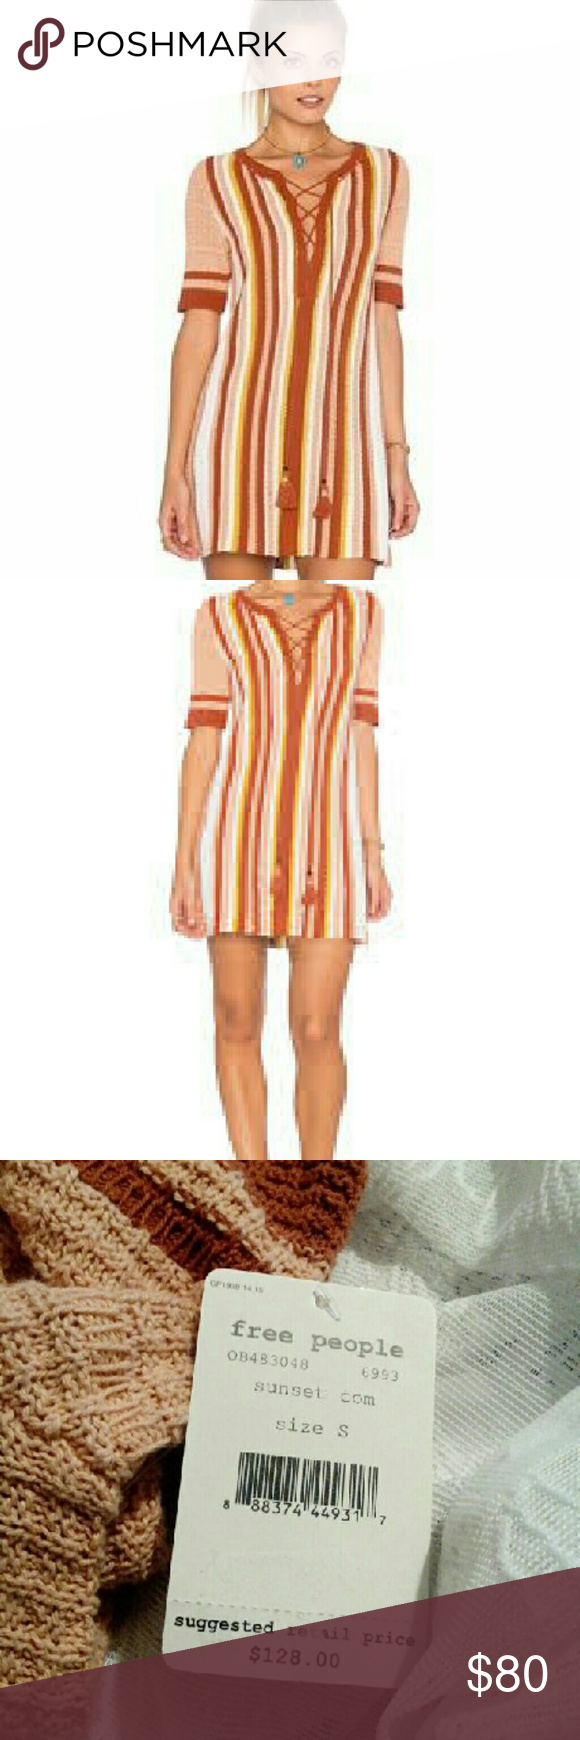 "NEW Free People Sunset Tunic Dress S4-6 Beautiful Sunset Tunic Dress By Free People. Can be worn as either a tunic or short dress. Sweater like knit. Gorgeous earth tones in the stripes.? Front lace up closure with a tassel fringe trim. Size Small 4-6  Retail $128 Our Price $80 Free shipping!  Size Small. 4-6 Bust 35""-36"" Natural Waist 27""-28"" Drop Waist 29.25""-30.25"" Hips 37""-38""  Broom Closet is a registered retailer. We receive our merchandise from wholesalers, manufacturers, and…"